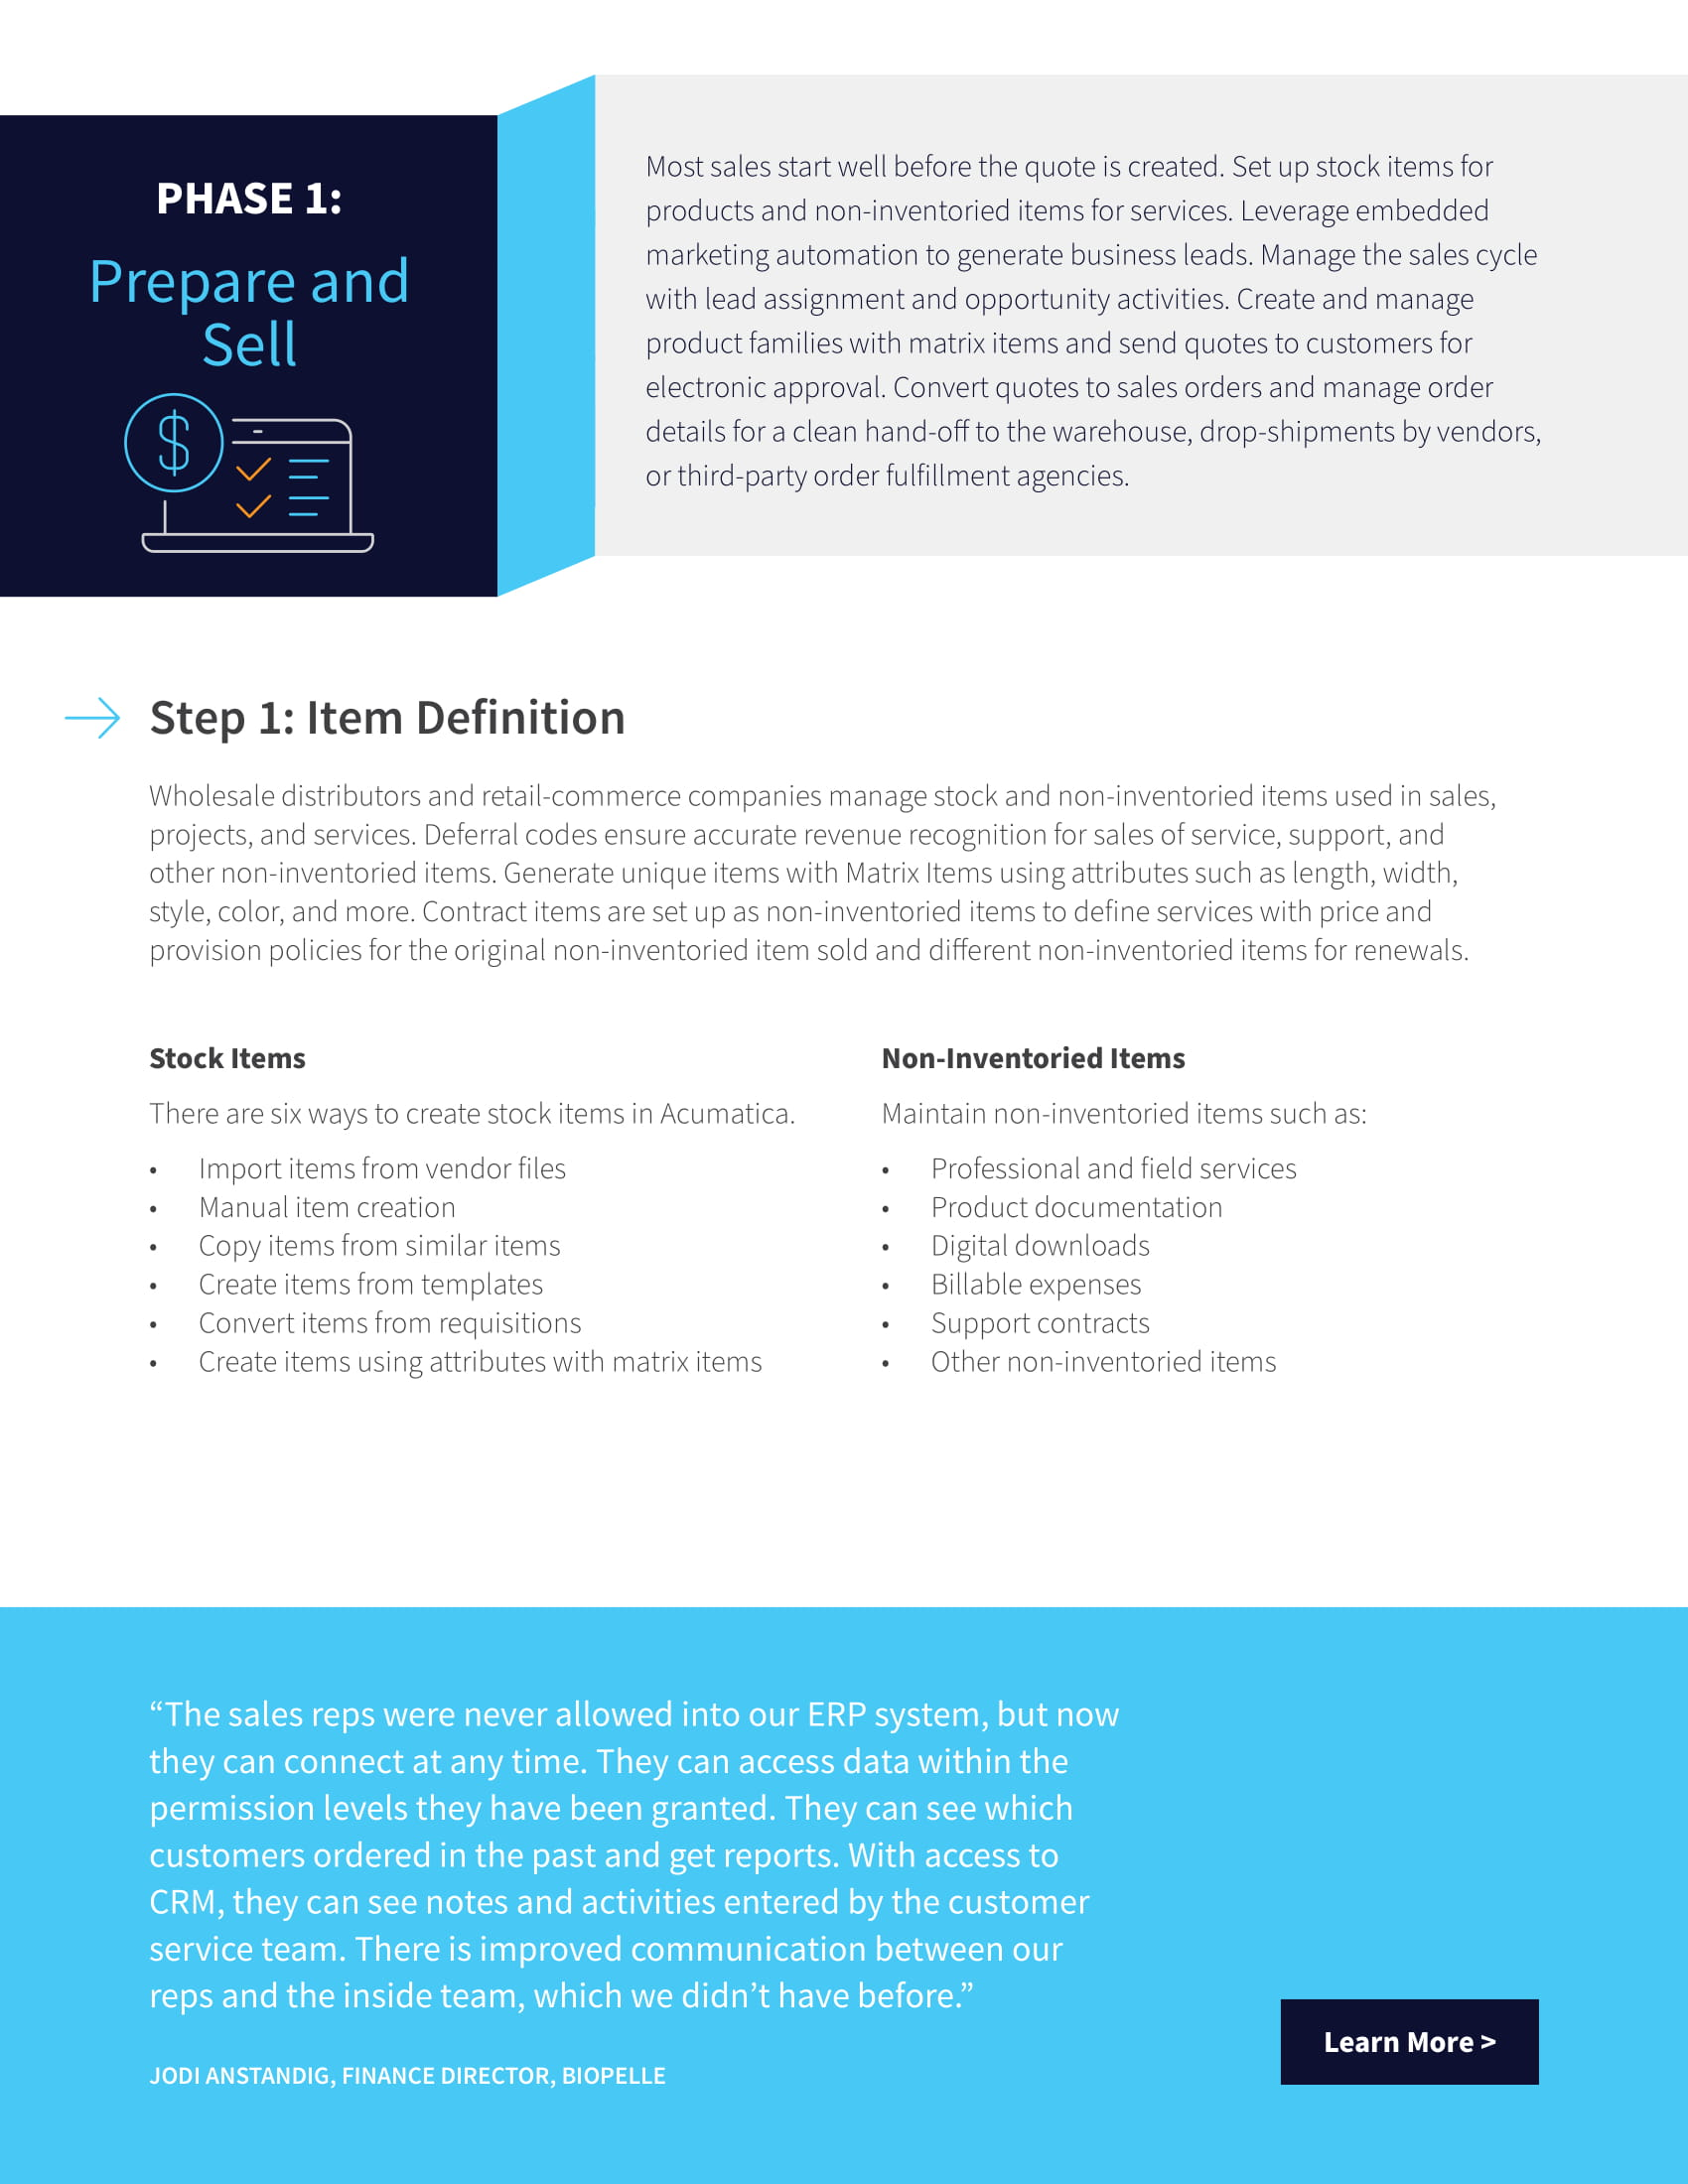 Perfecting the Q2C Cycle for Distributors and Retail-Commerce Companies, page 1